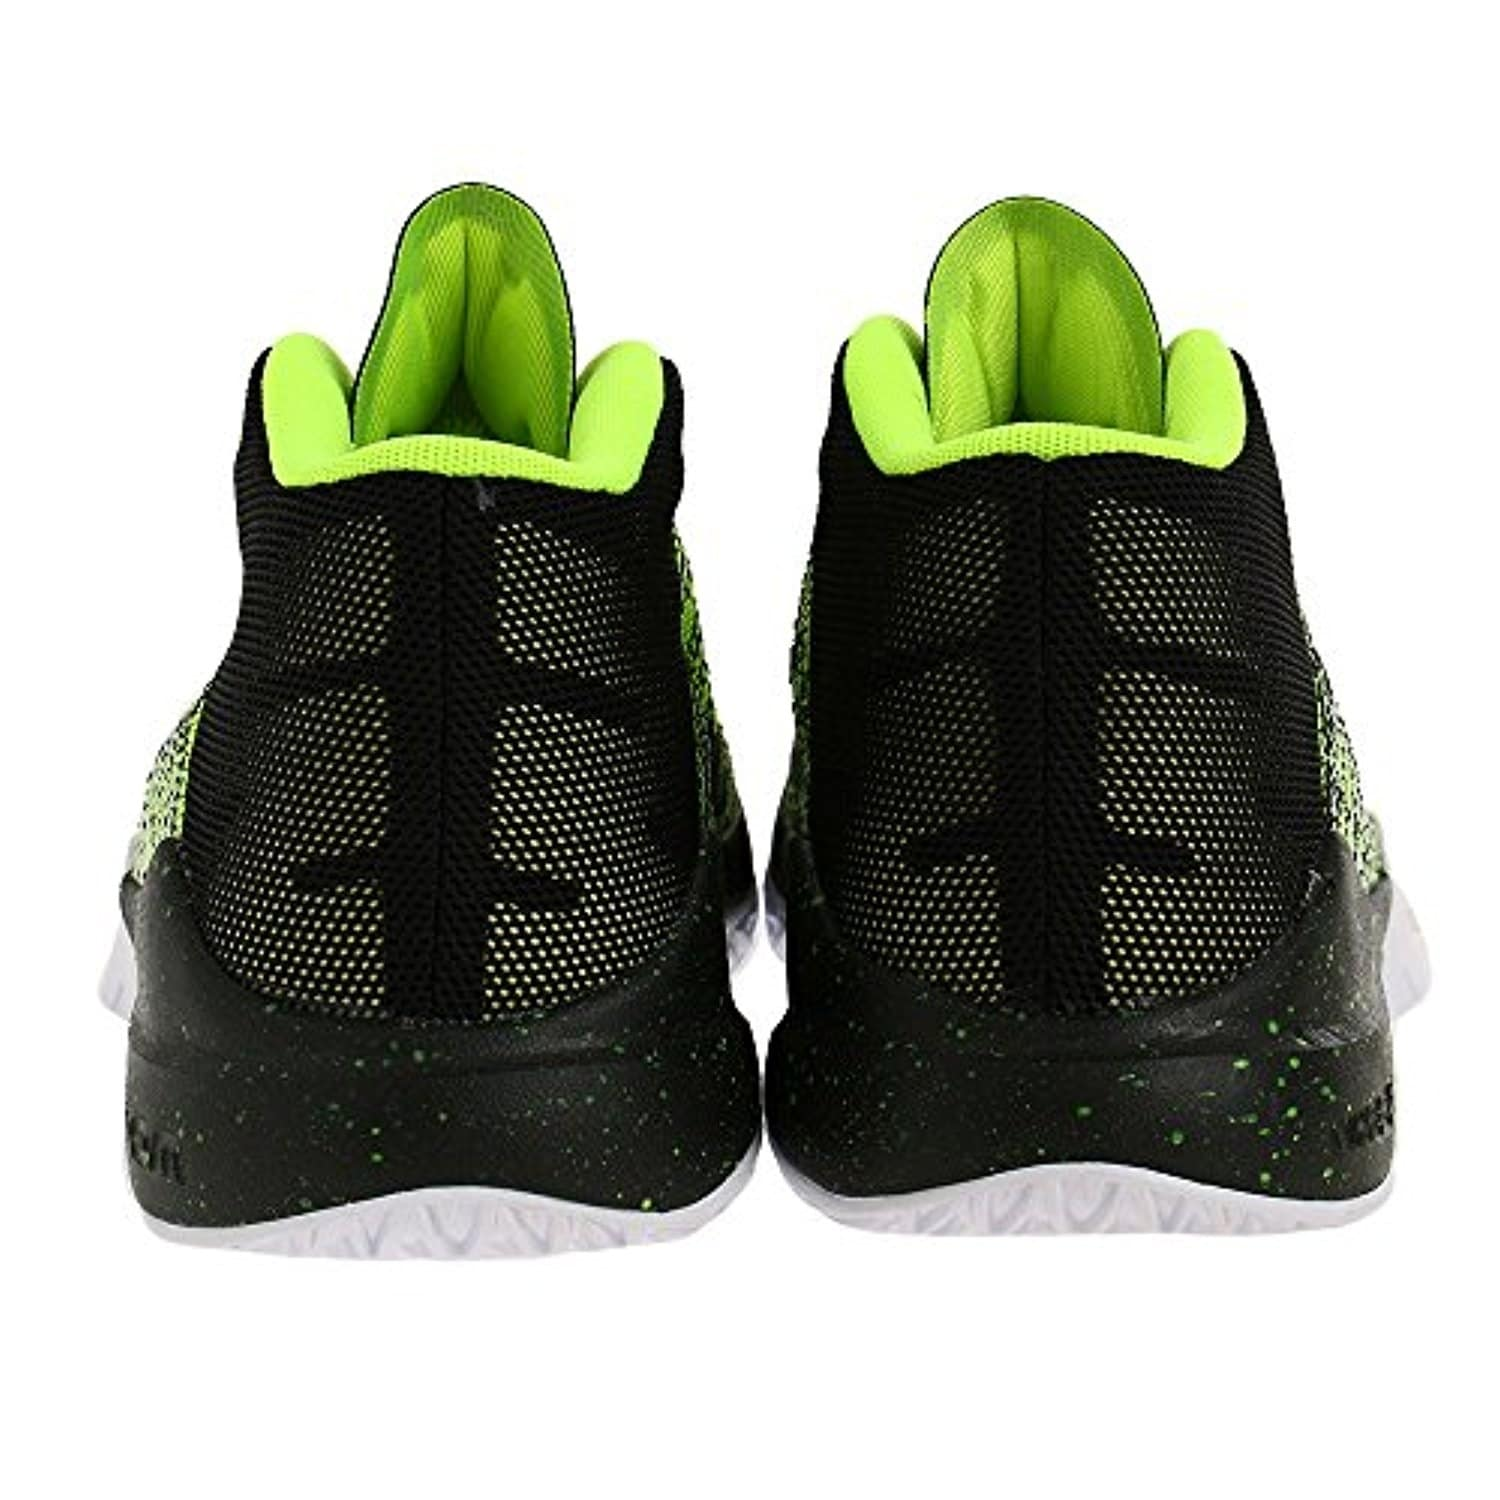 more photos 29a99 edad1 Shop Boy s Nike Zoom Ascention (GS) Basketball Shoe Volt Black White - Free  Shipping Today - Overstock - 18280503